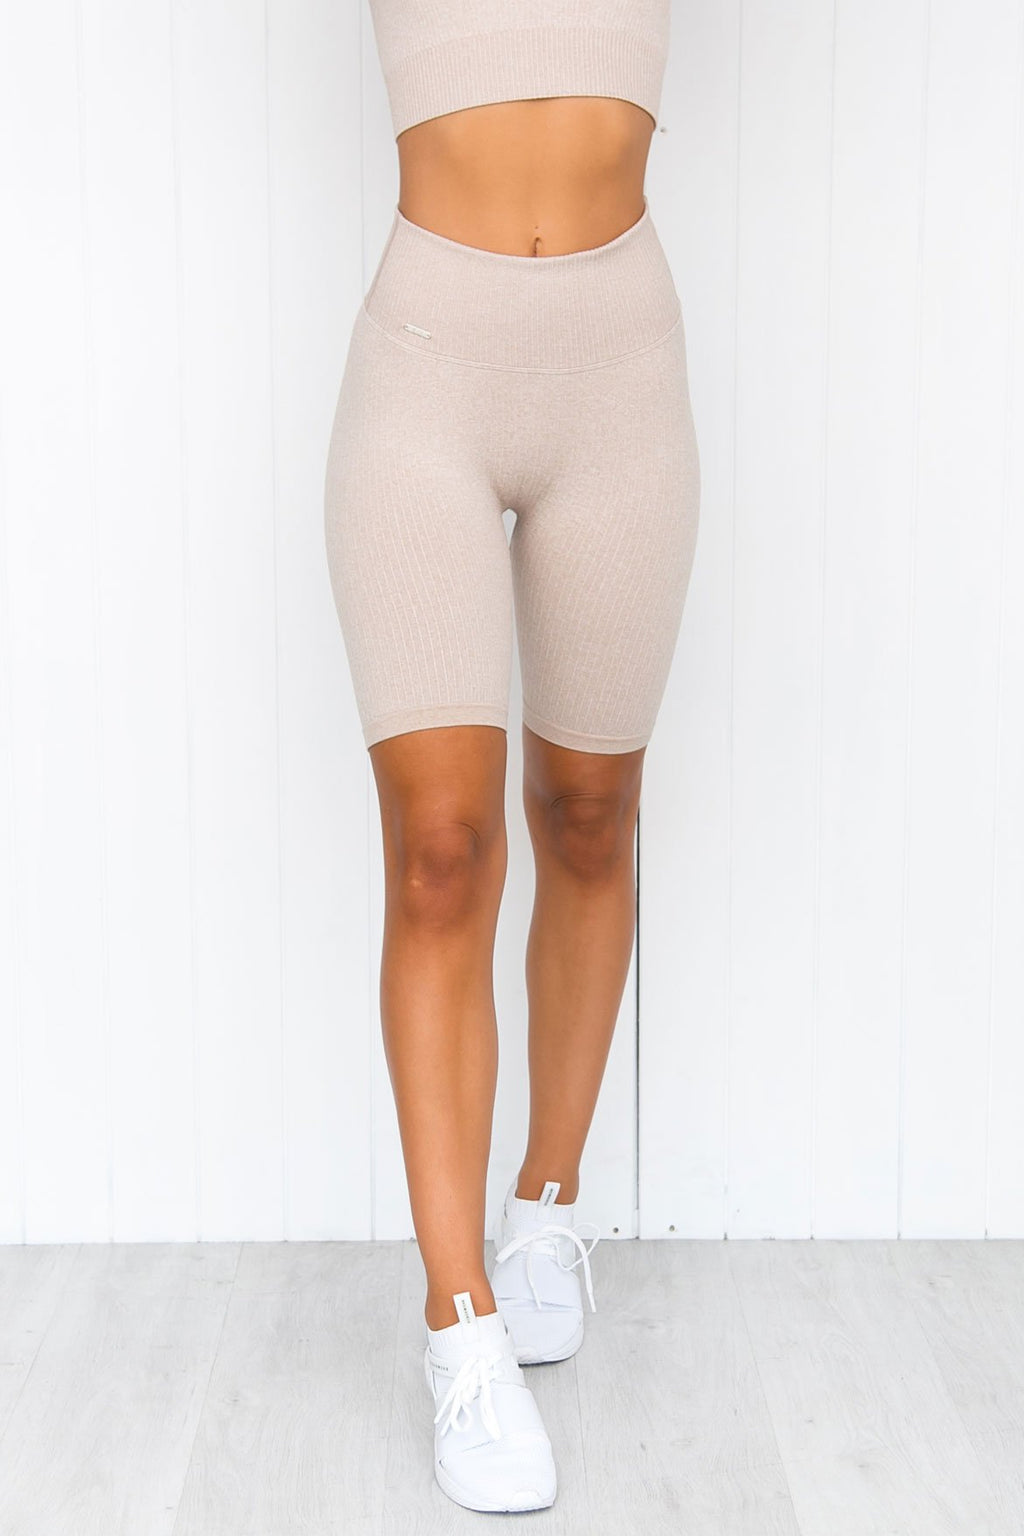 Beige Ribbed Seamless Bike Shorts - PURE DASH